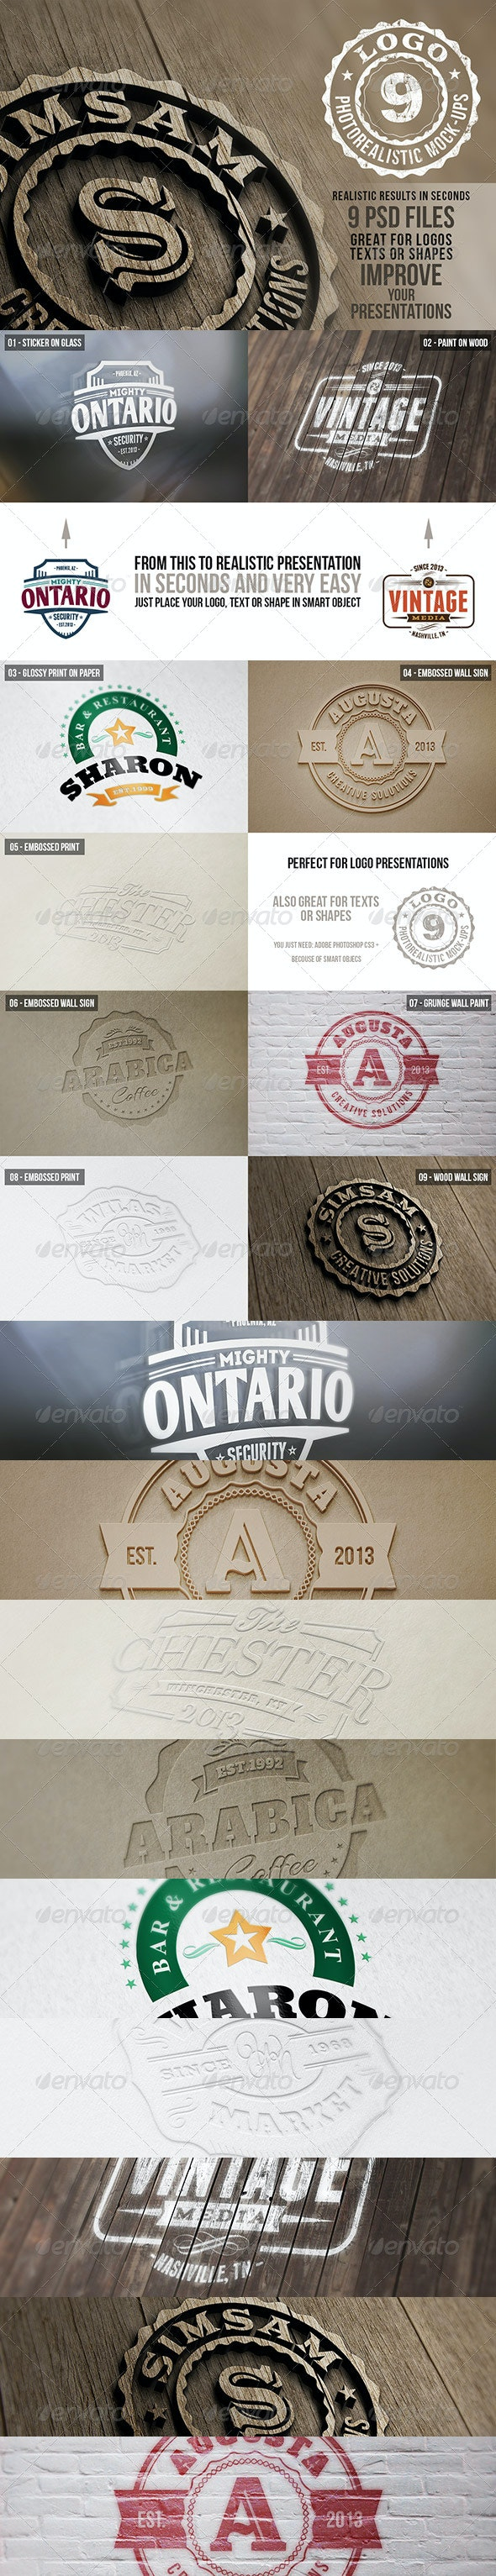 Photorealistic Logo Mock-Ups Vol.1  - Logo Product Mock-Ups